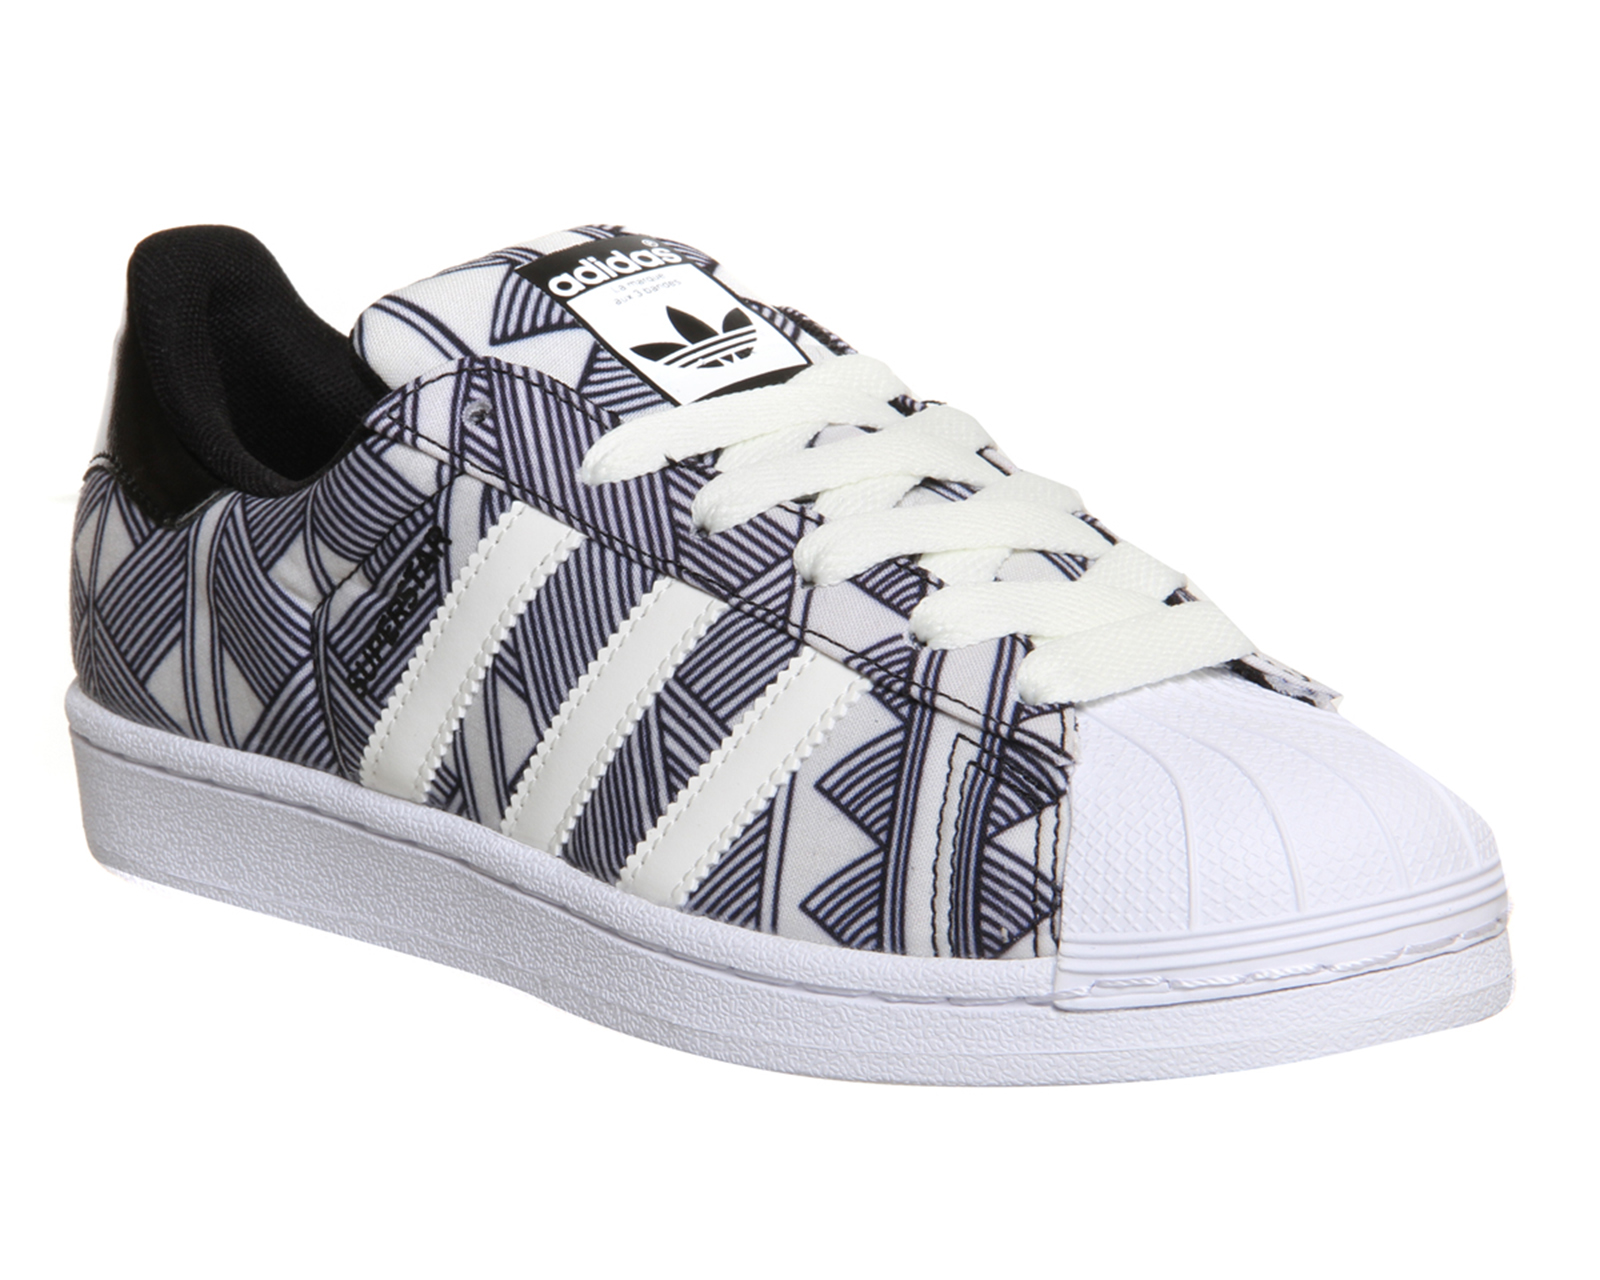 Adidas Superstar II White Red Blue Trainers for Women Shoes